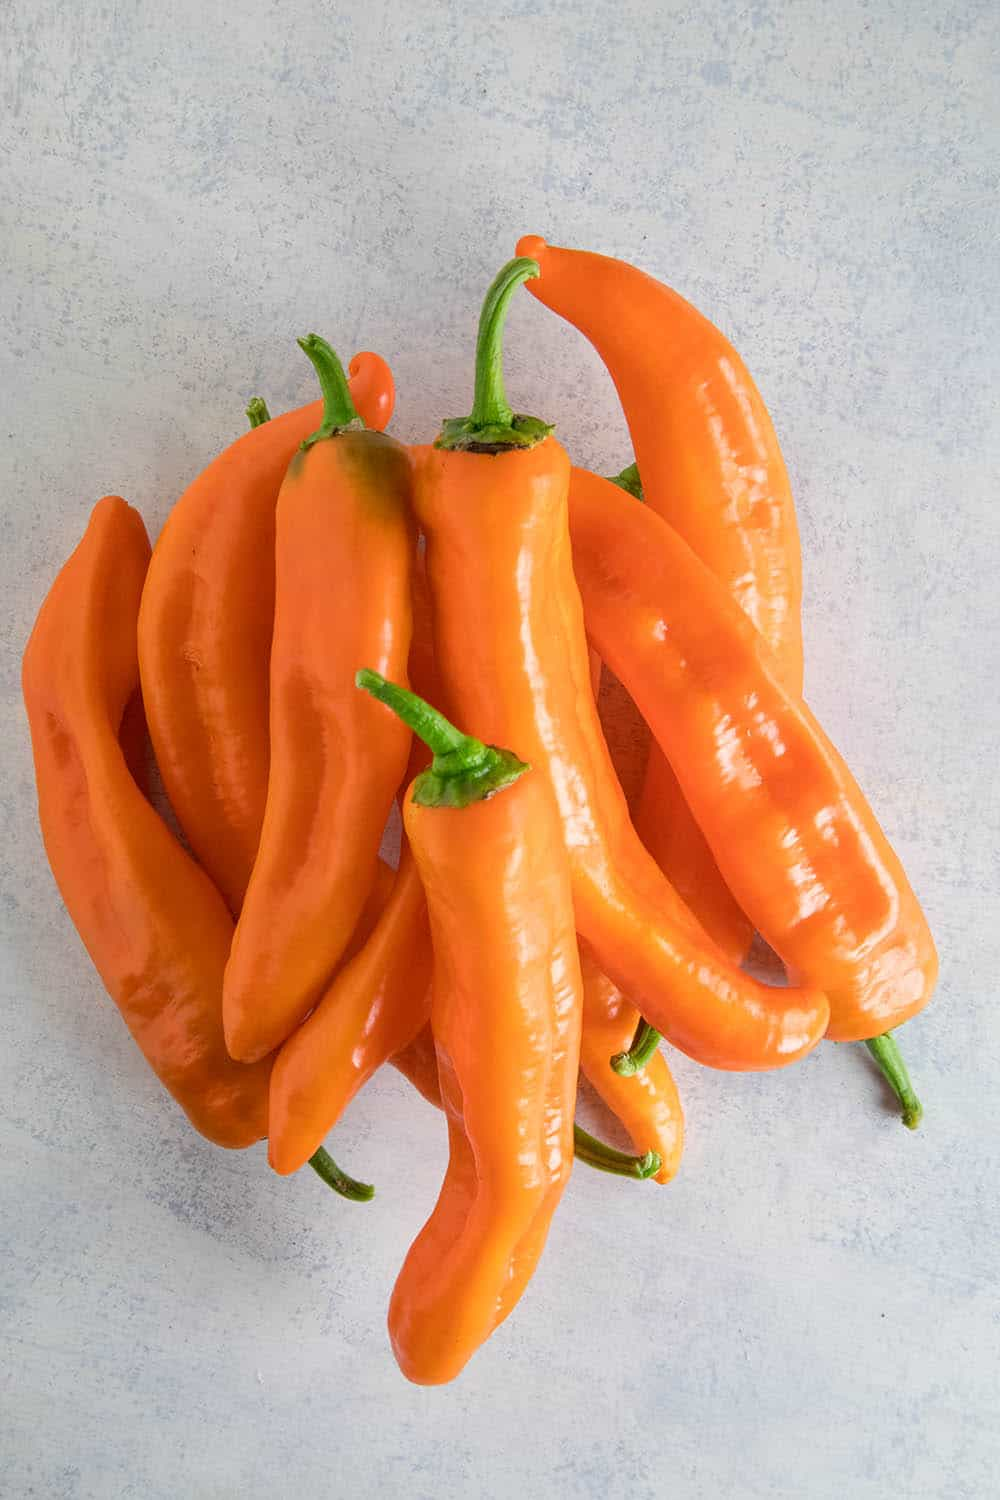 Corno di Toro Chili Peppers - Orange Variety